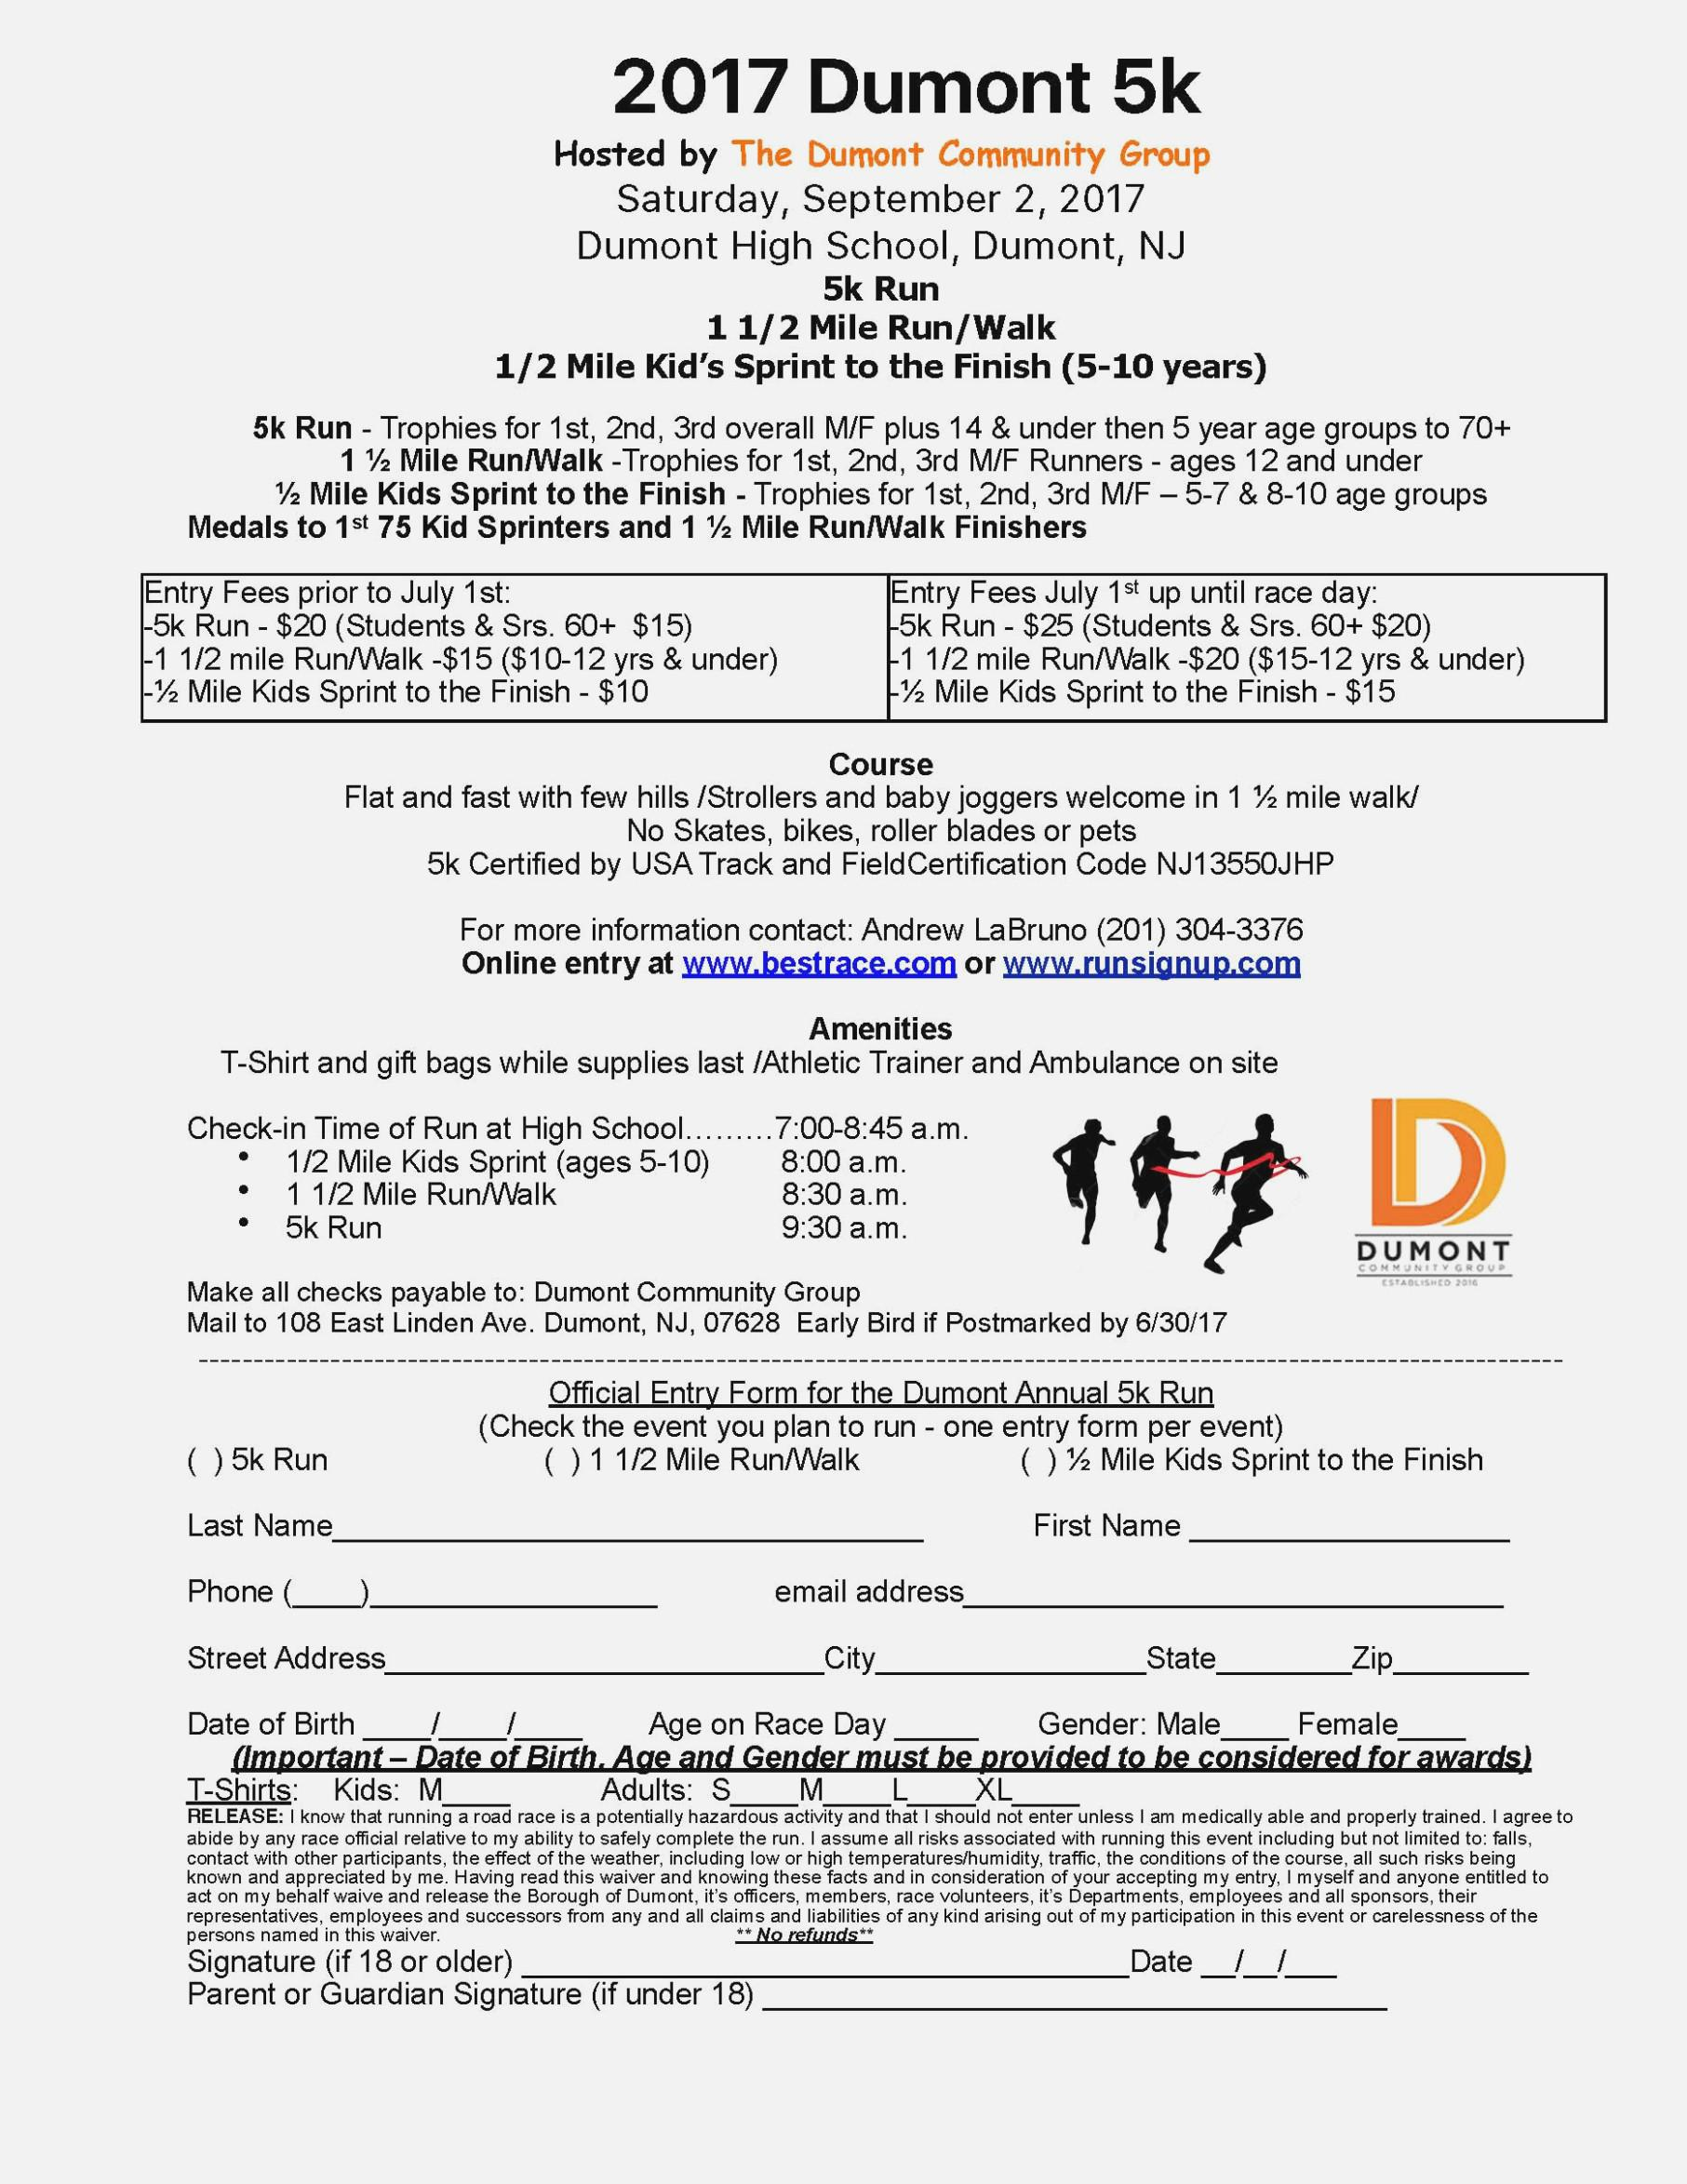 Generic 5k Registration Form